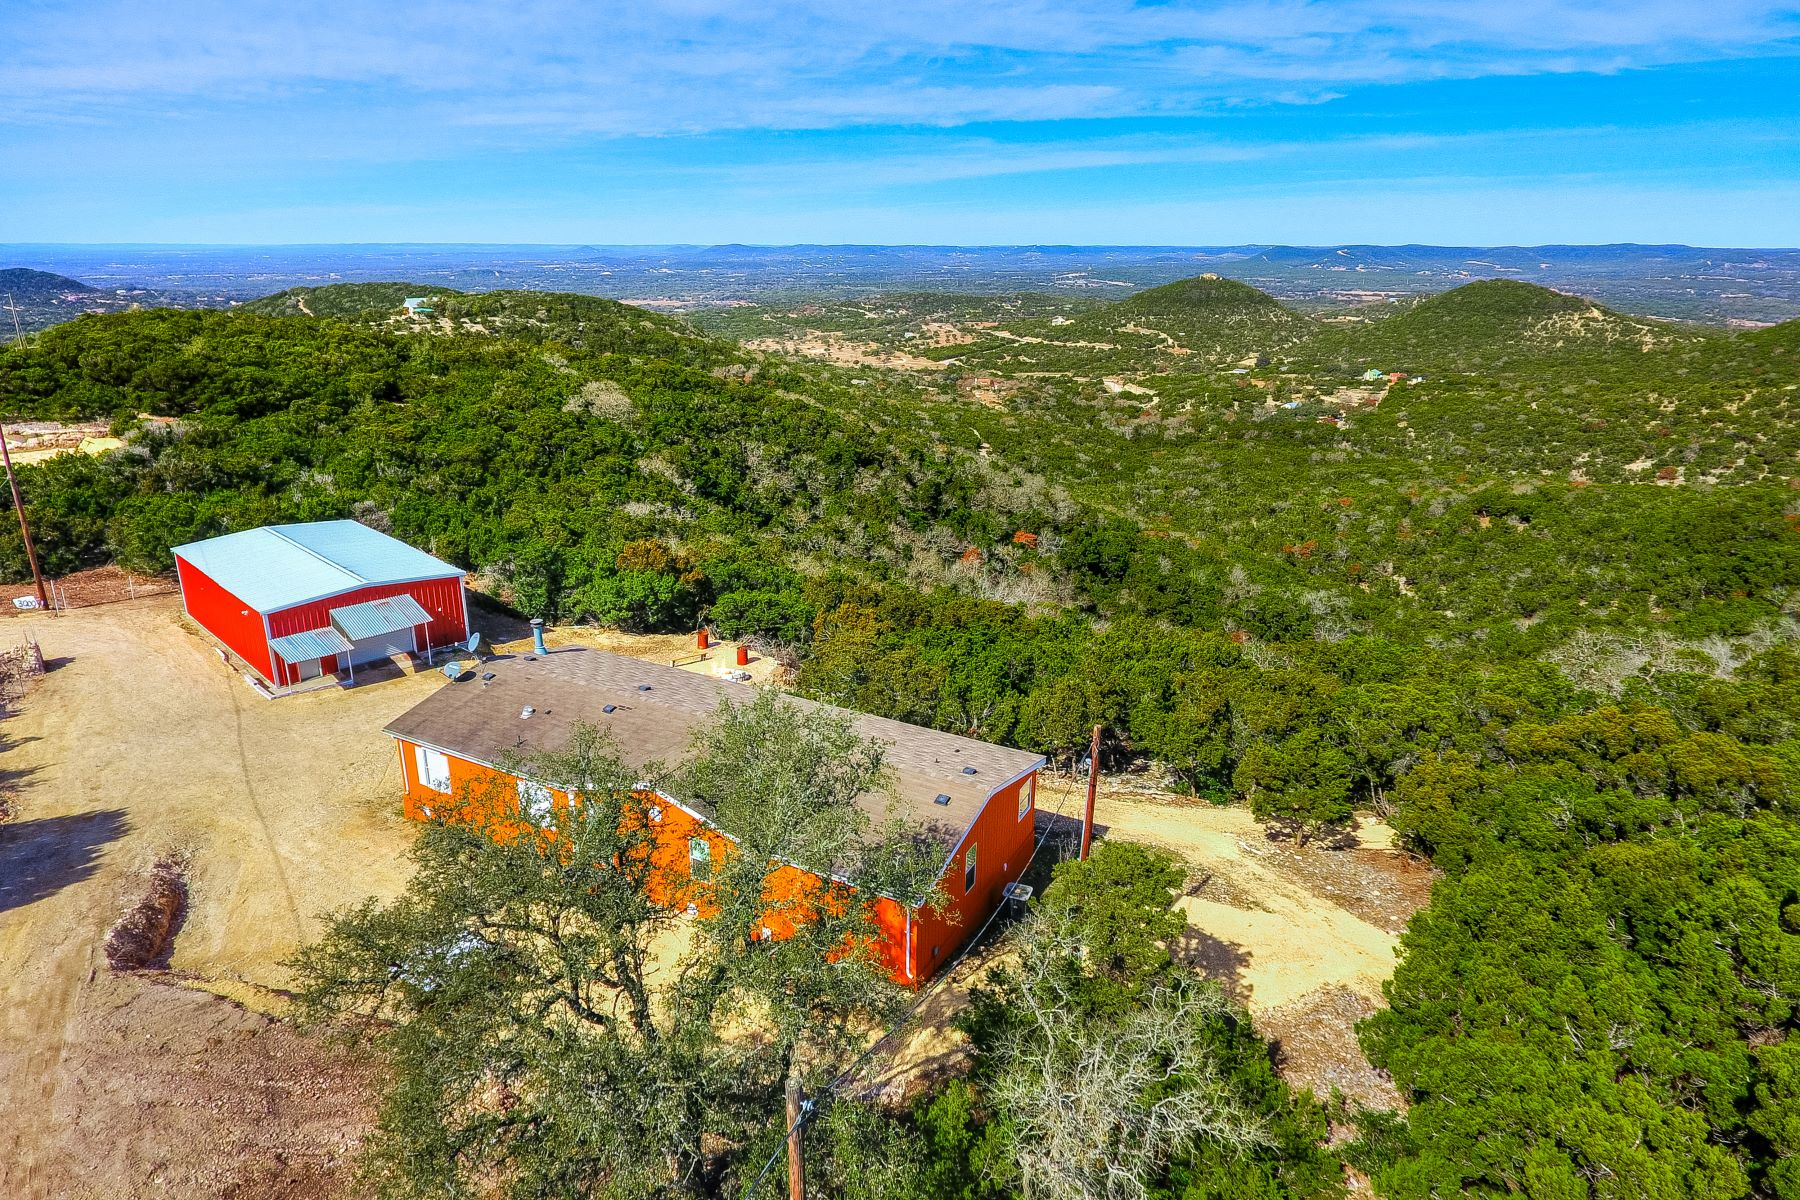 por un Venta en Over 7 Acres in Pipe Creek With Views 3000 Timbercreek Road Pipe Creek, Texas 78063 Estados Unidos